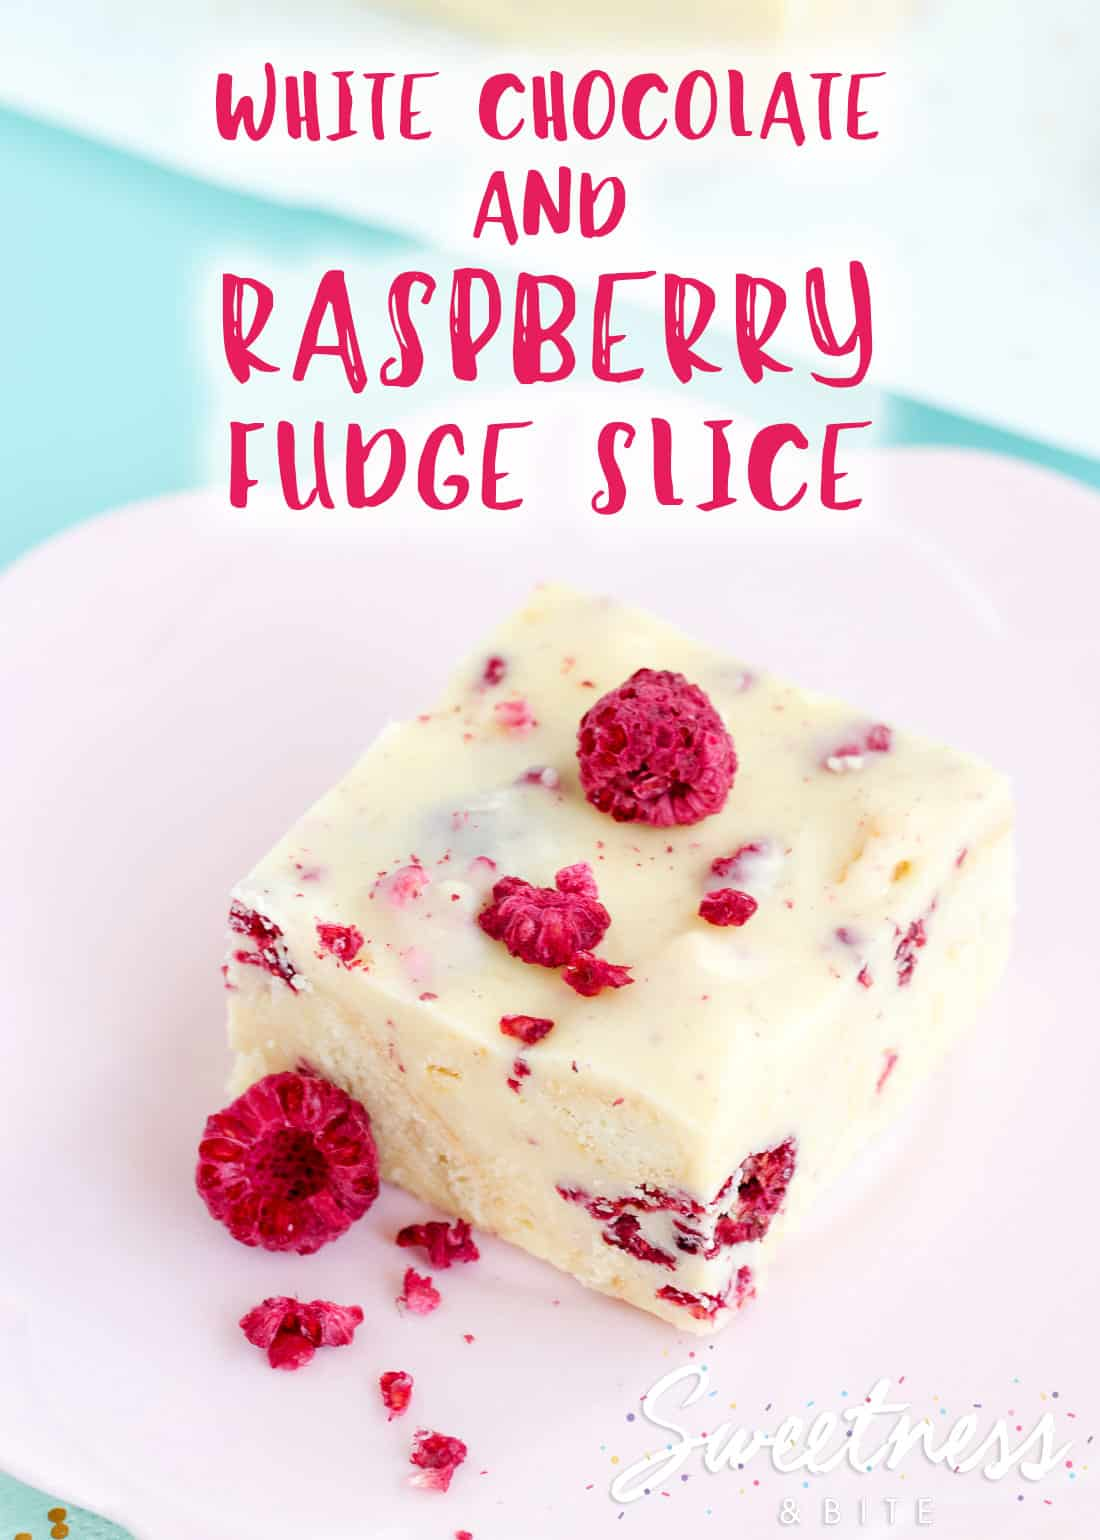 """One square piece of white chocolate and raspberry fudge slice on a pink flower shaped plate. Text overlay reads """"white chocolate and raspberry fudge slice""""."""